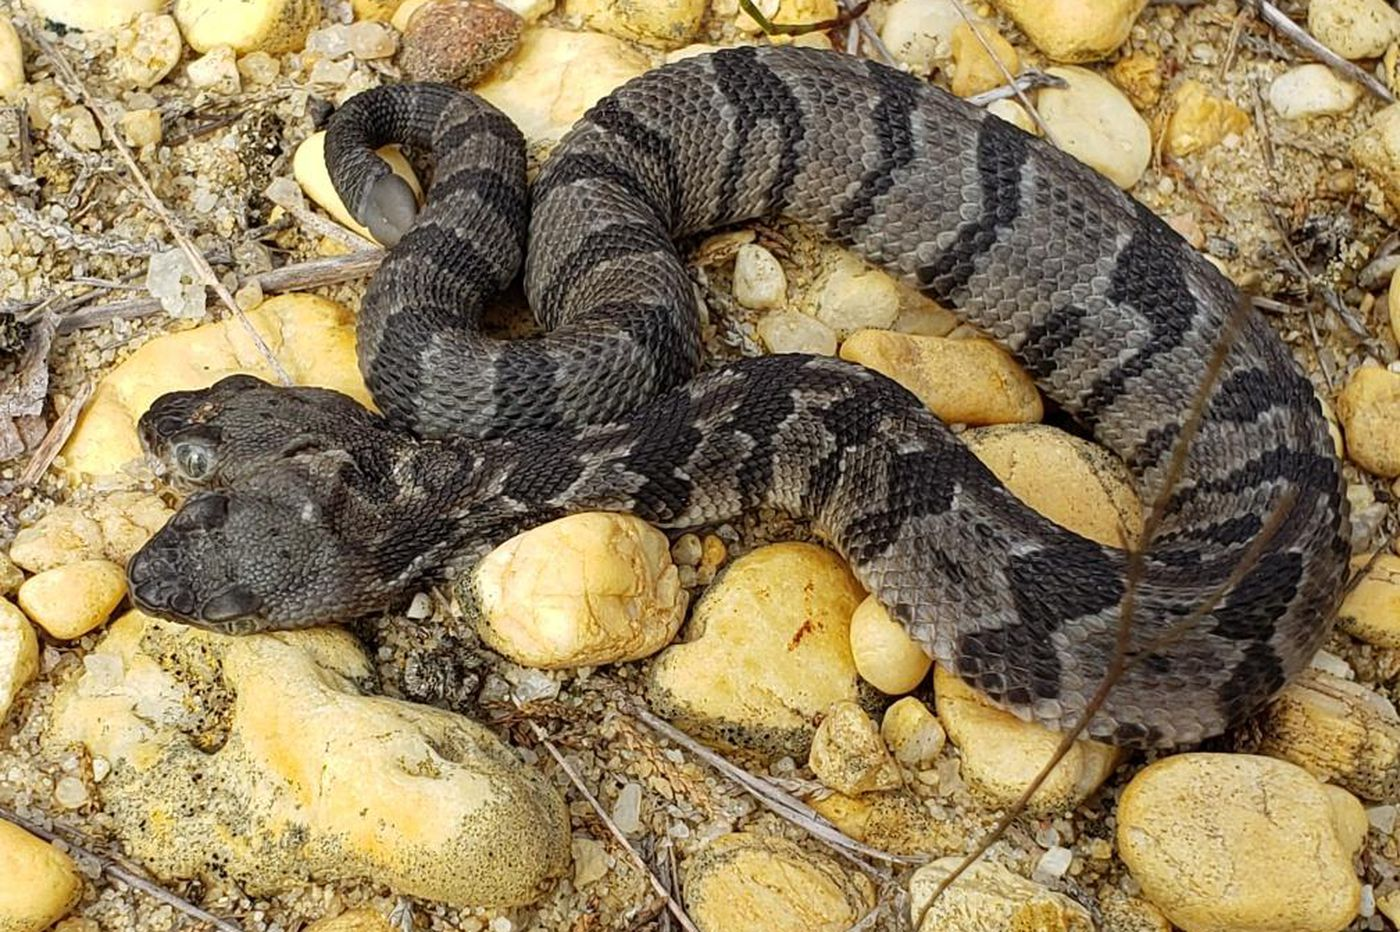 Two-headed timber rattlesnake found in New Jersey pine barrens